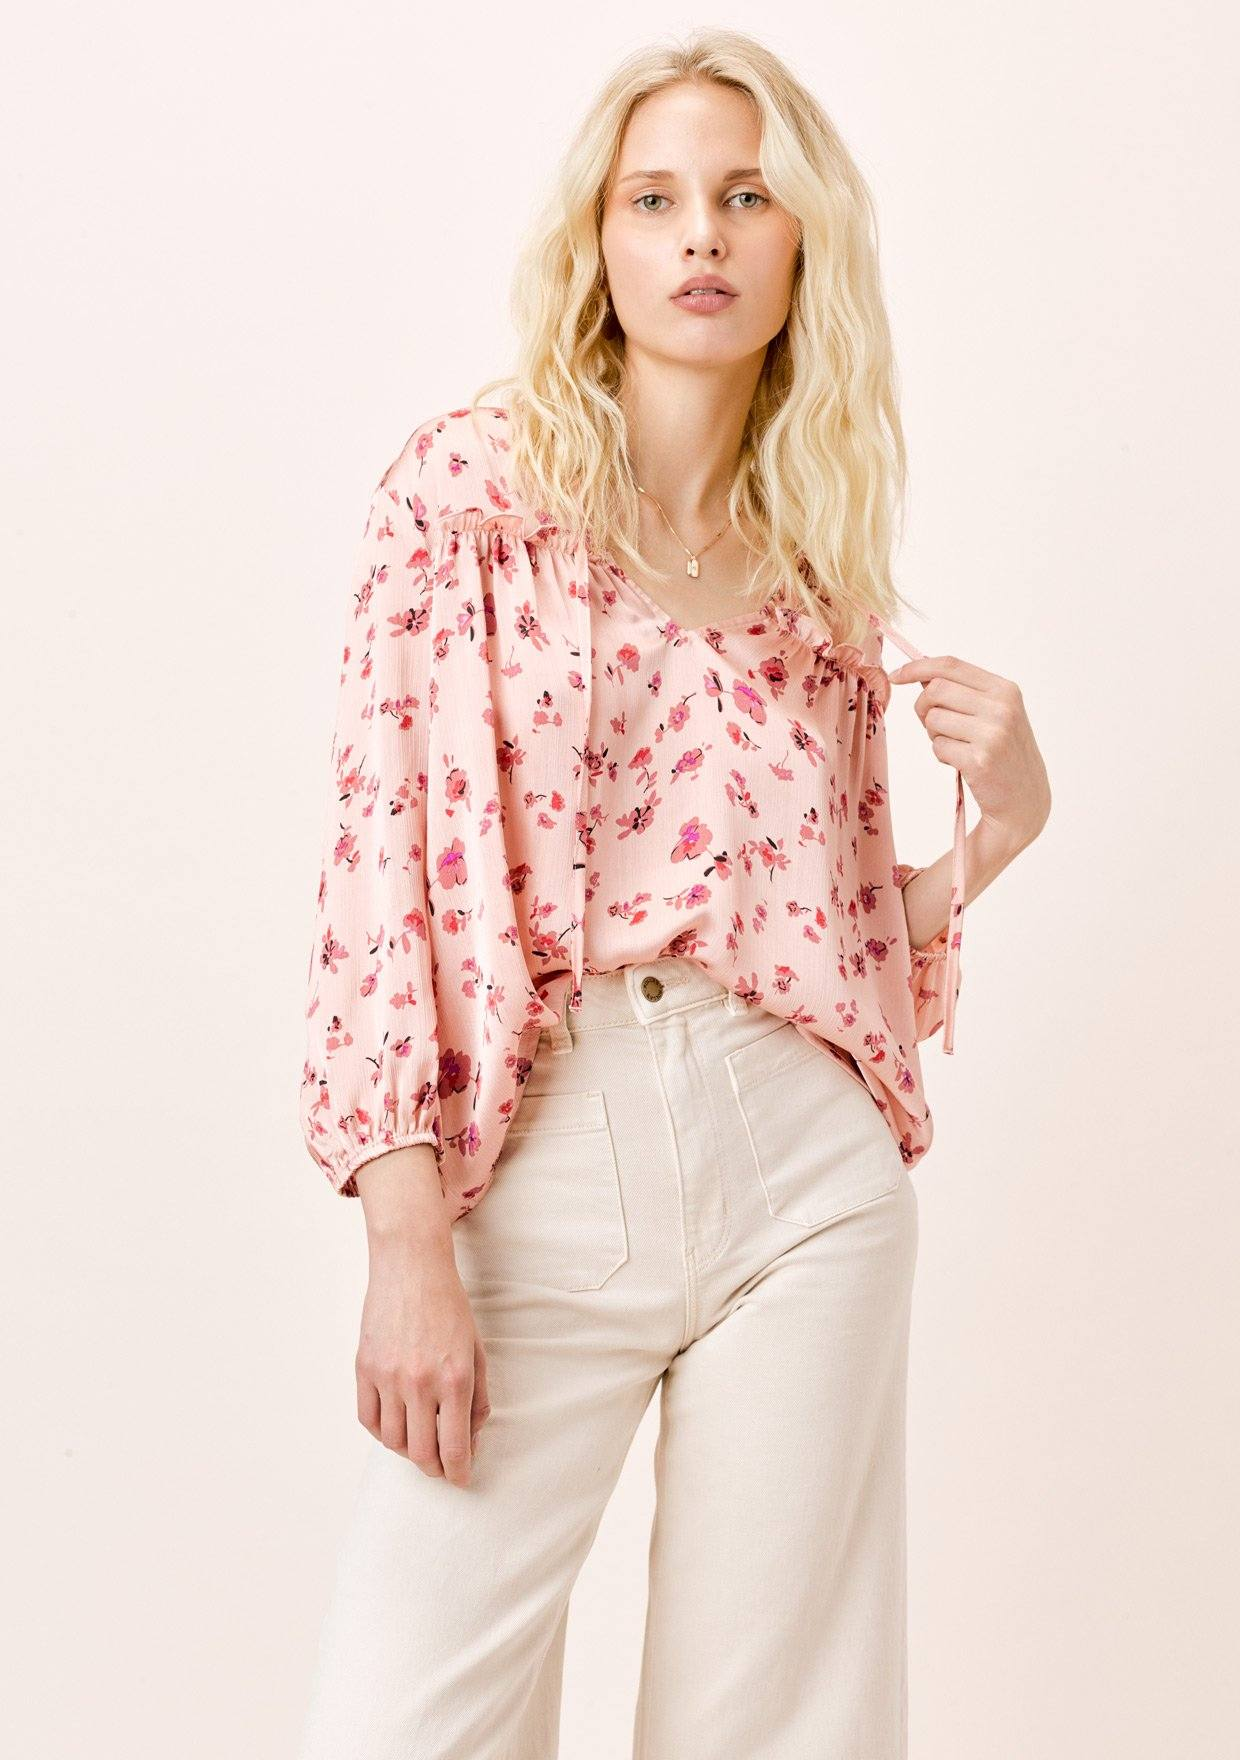 [Color: DesertRose/Mauve] Lovestitch desert rose/mauve, satin floral printed peasant blouse with ruffled details.